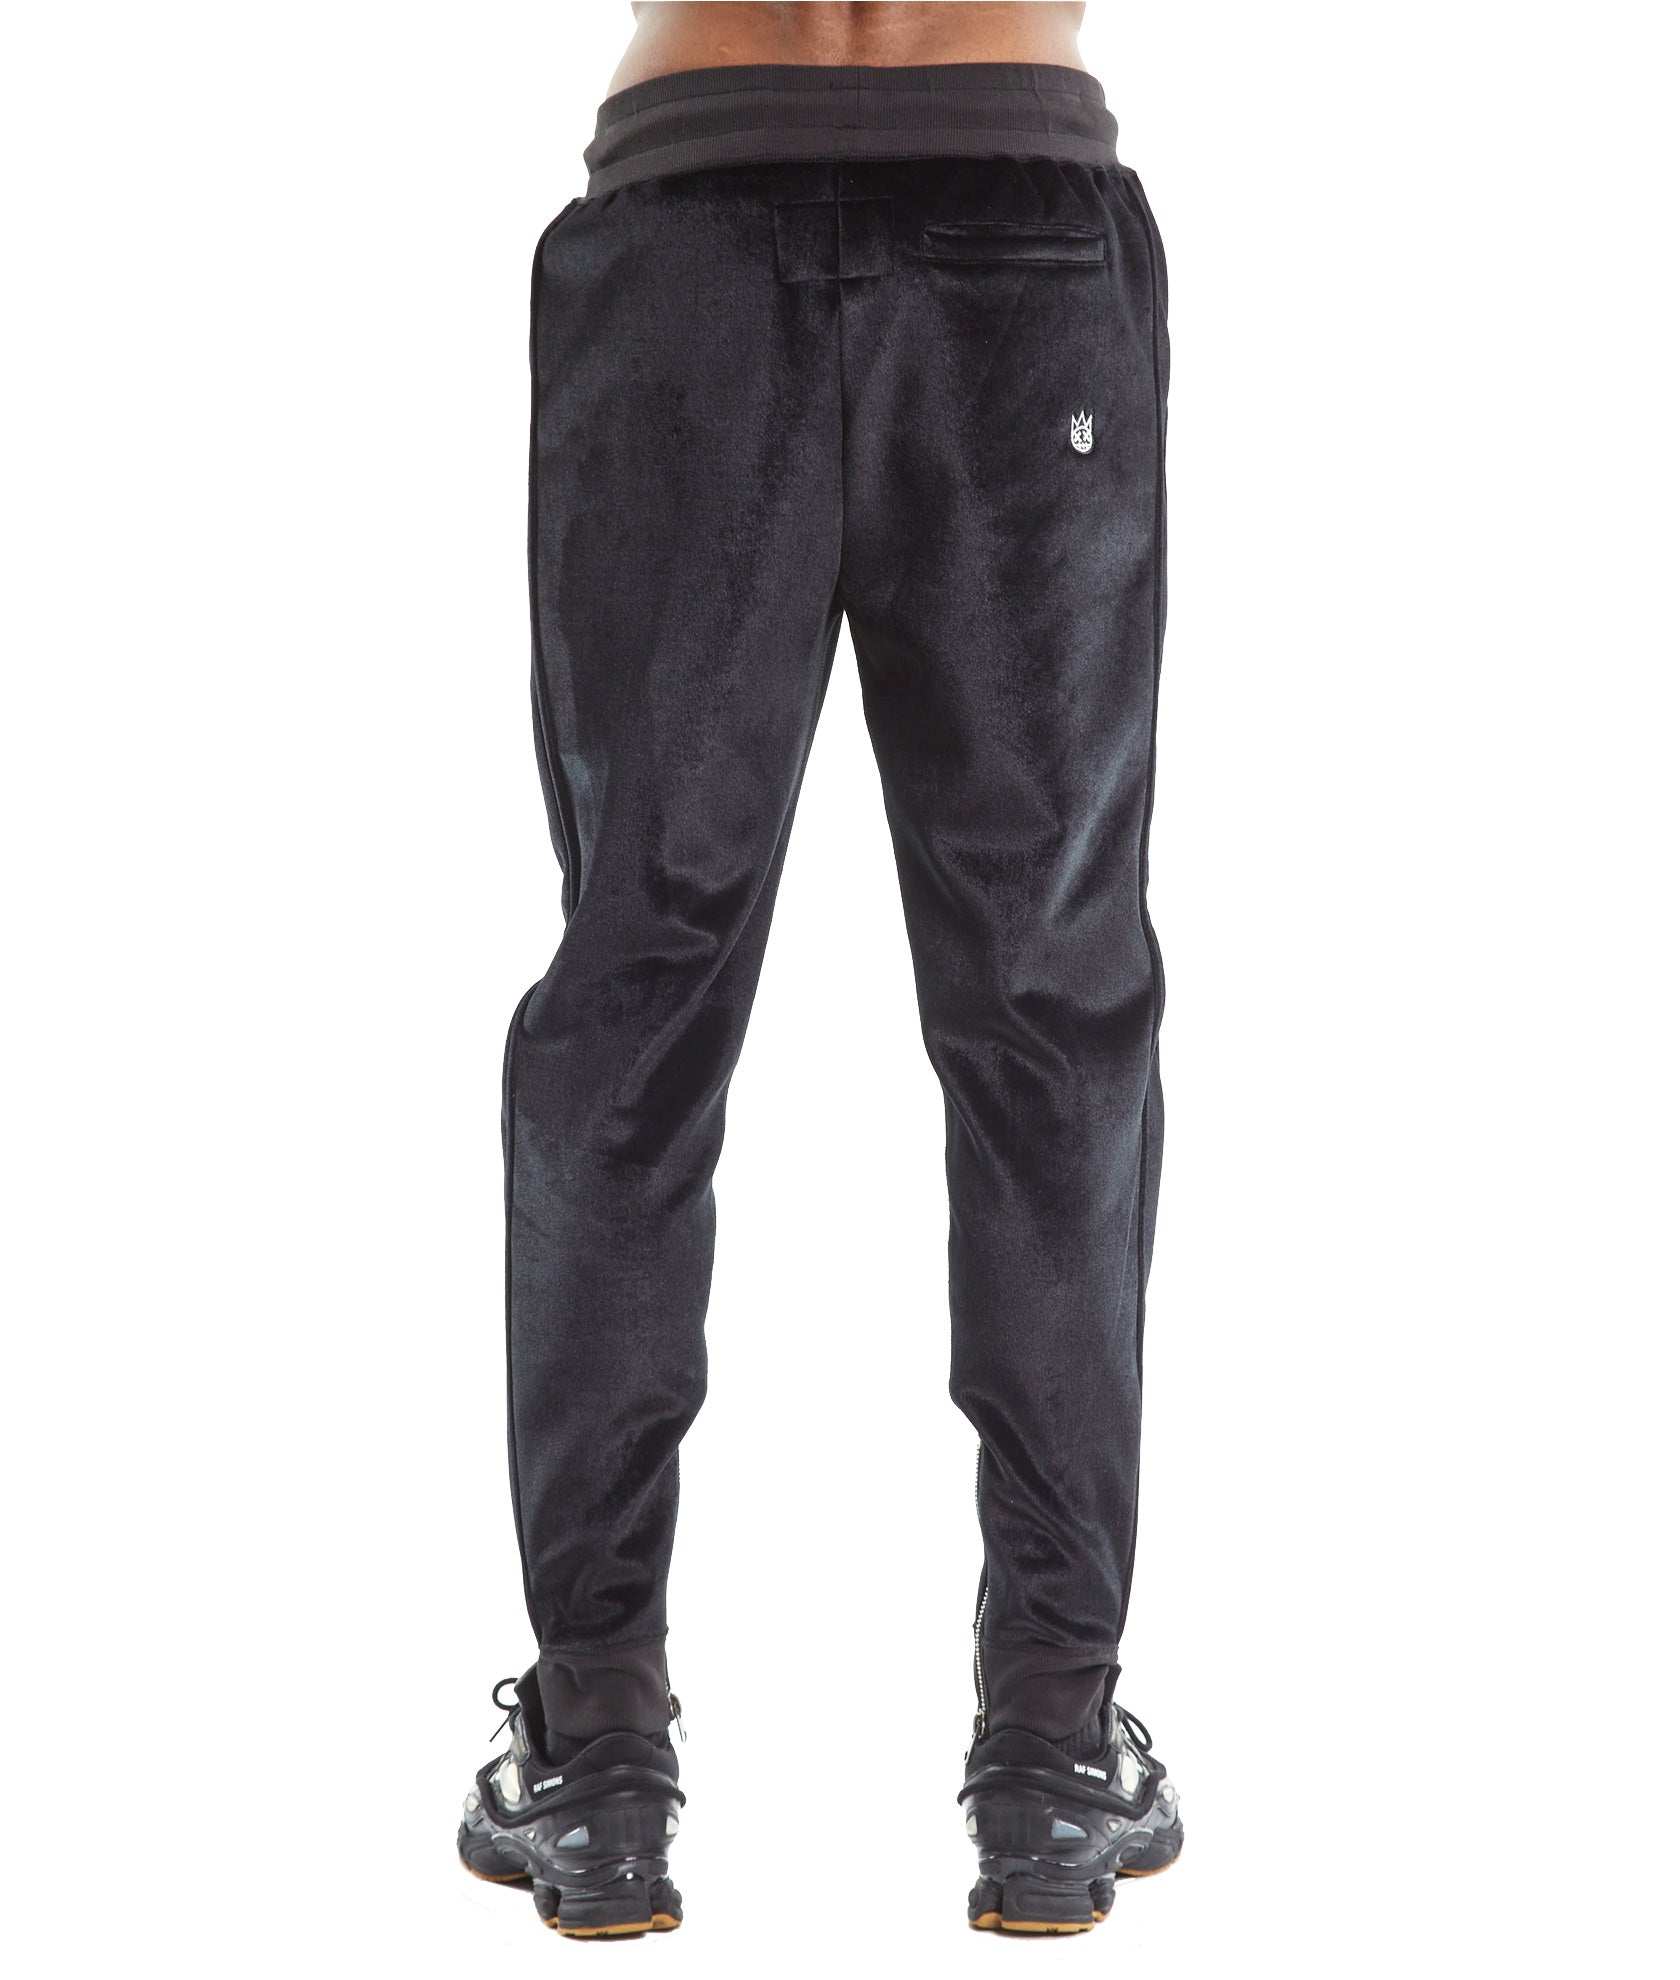 Cult of IndividualityMen's Velour Sweatpants in Black